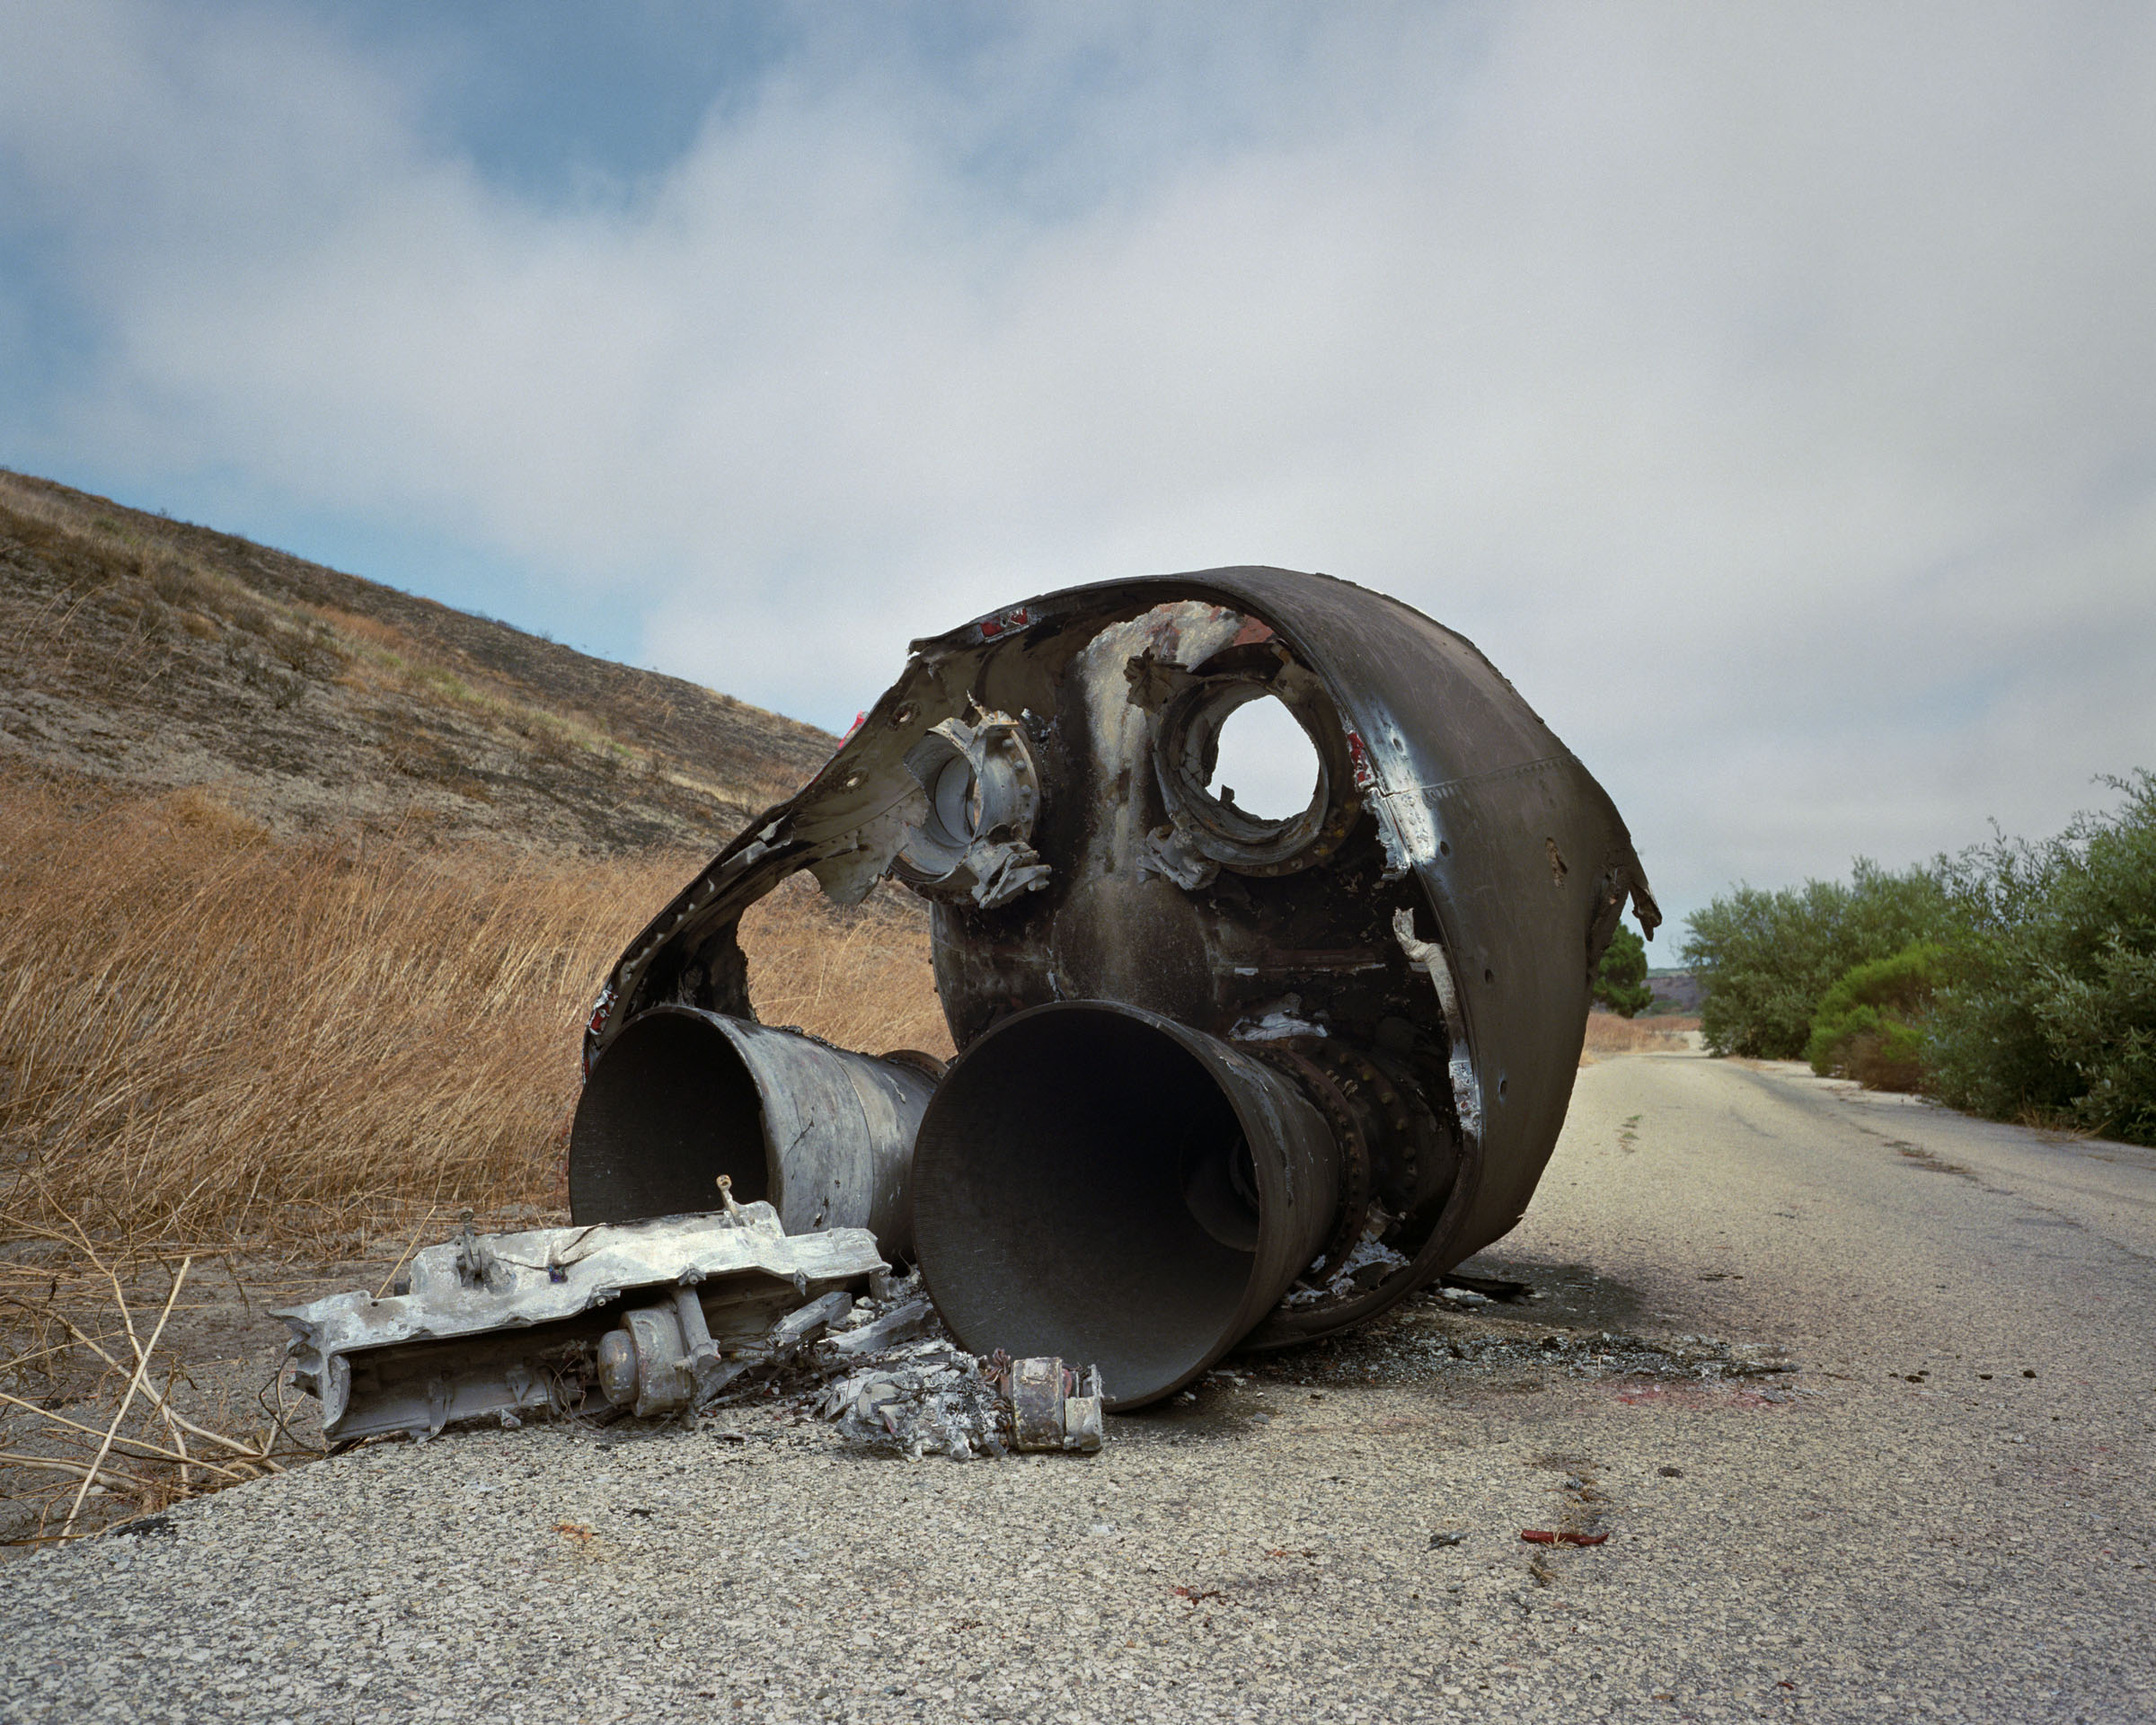 Debris from 1st stage of unsuccessful Minuteman I missile test launch, Vandenberg Air Force Base, California, 1993.